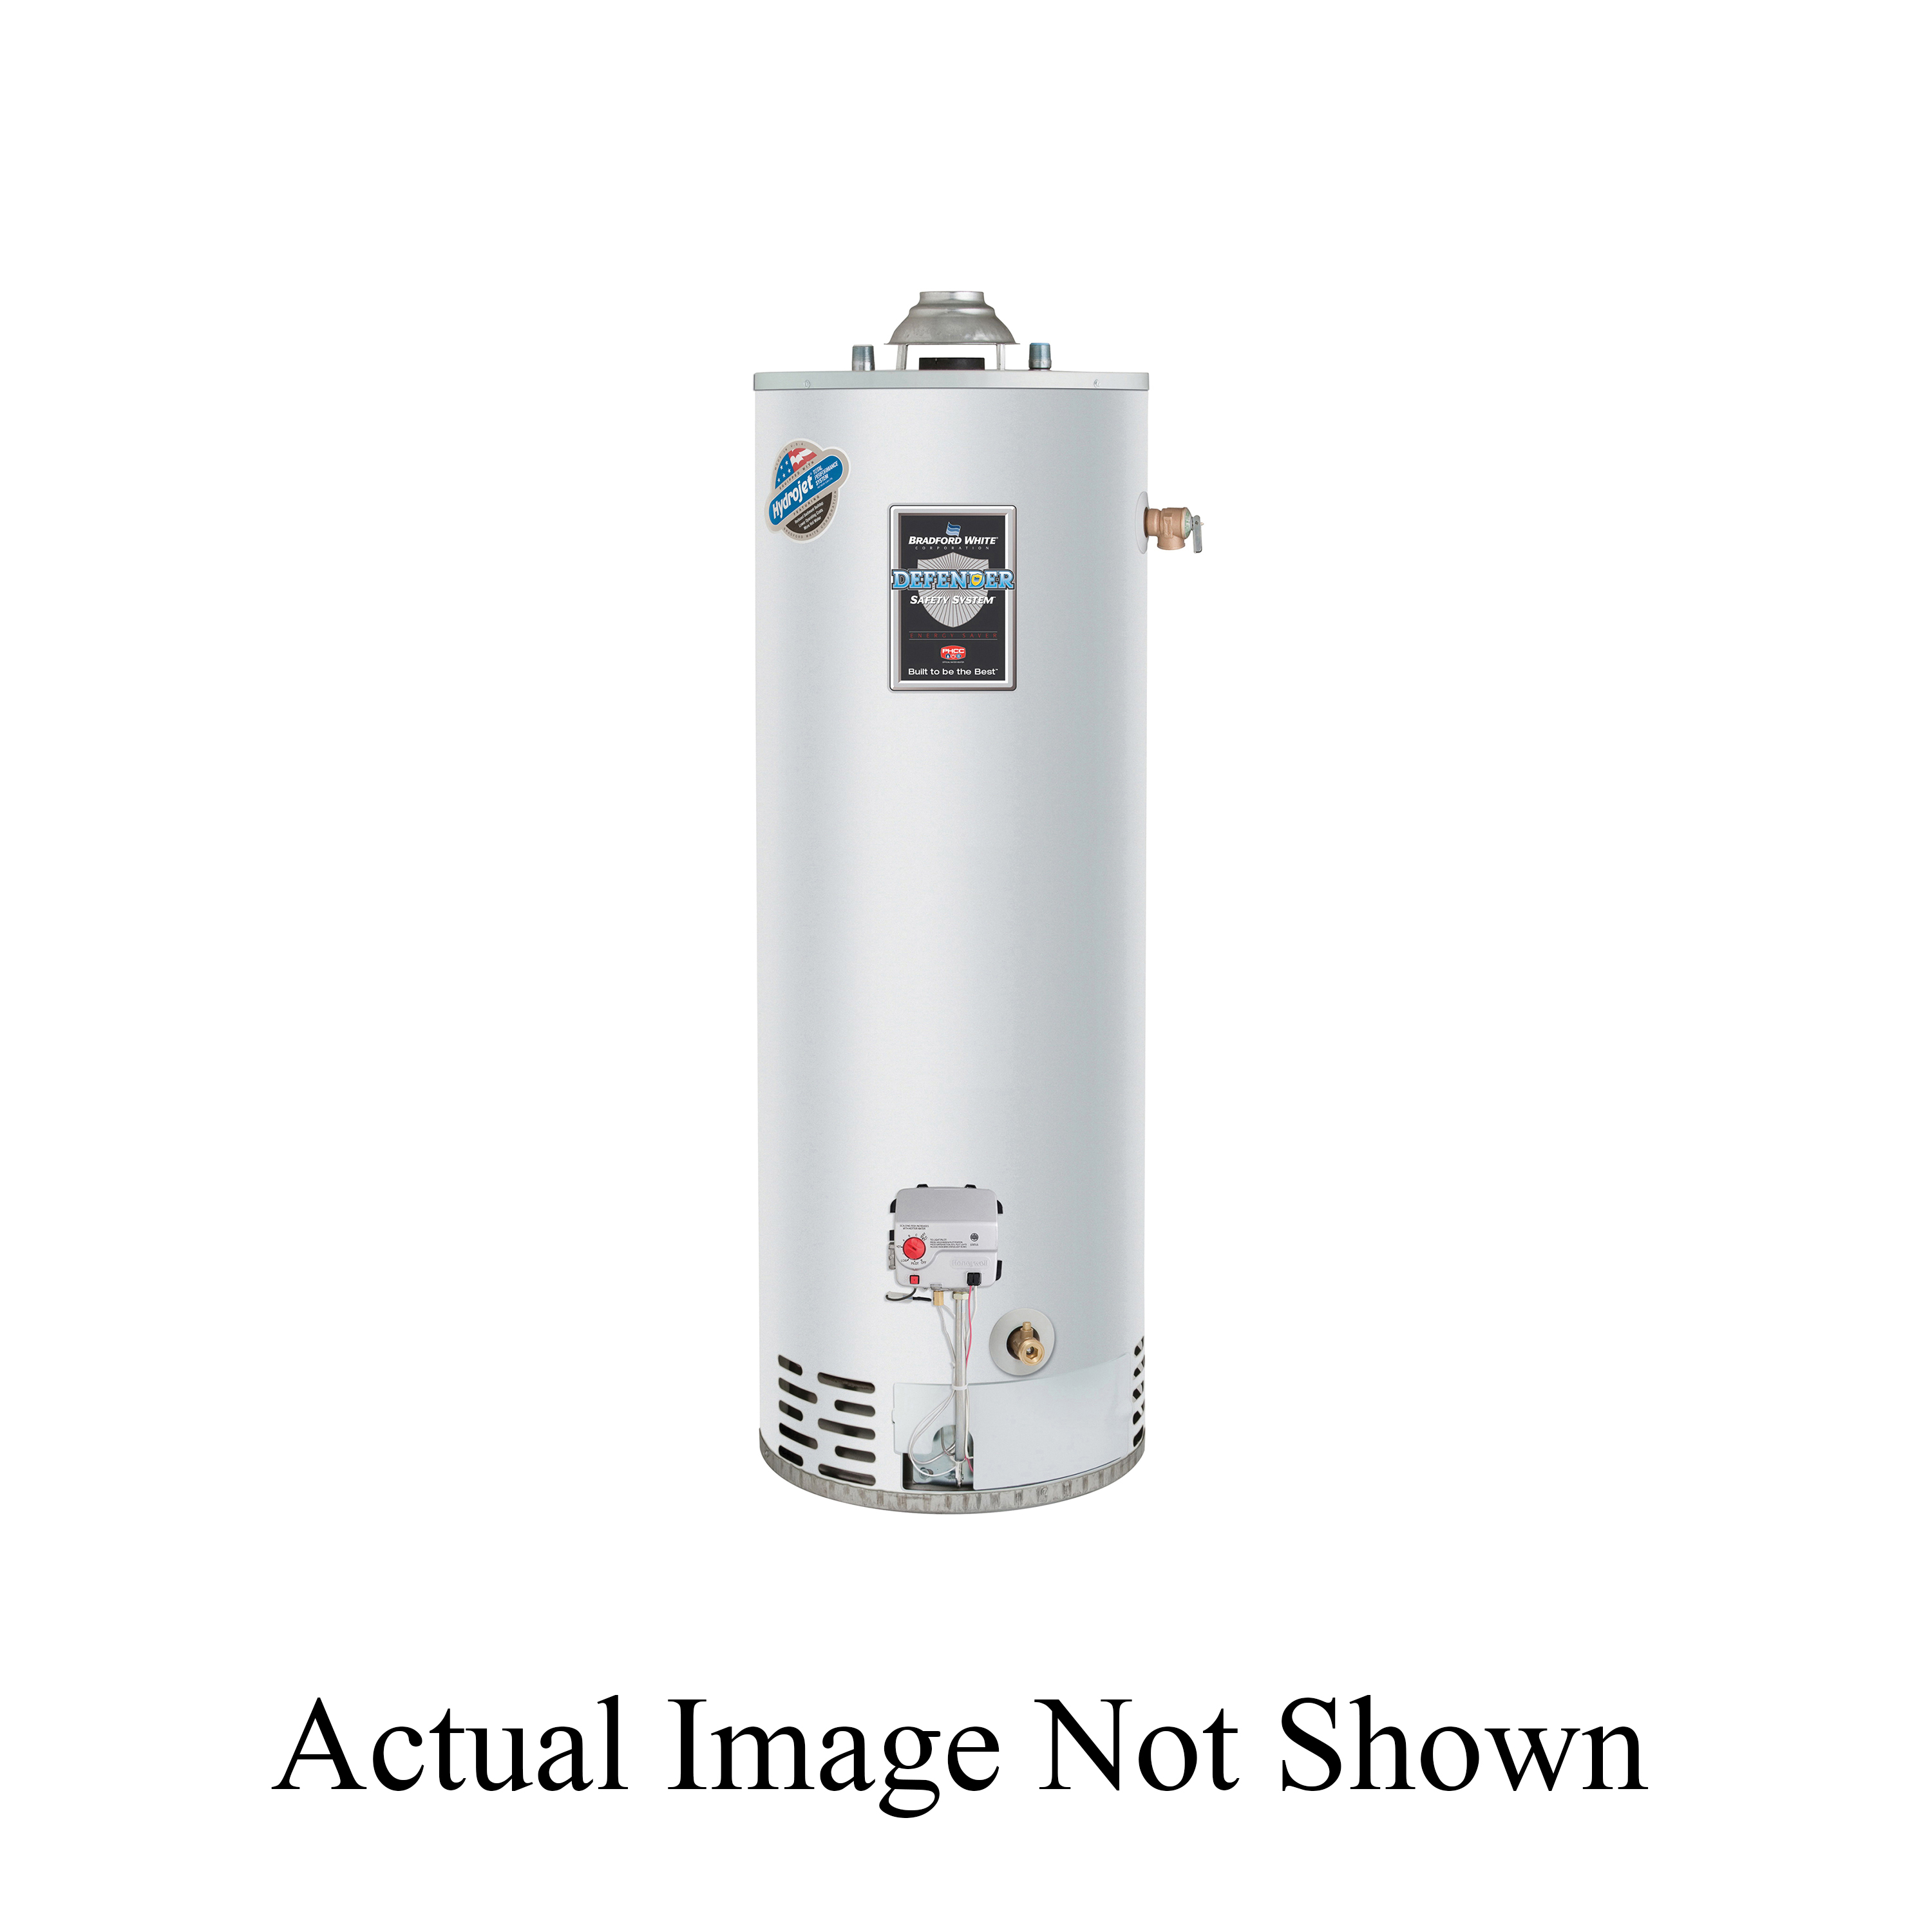 Bradford White Defender Safety System RG140T6N-394 Gas Water Heater, 34000 Btu/hr Heating, 40 gal Tank, Natural Gas Fuel, Atmospheric Vent